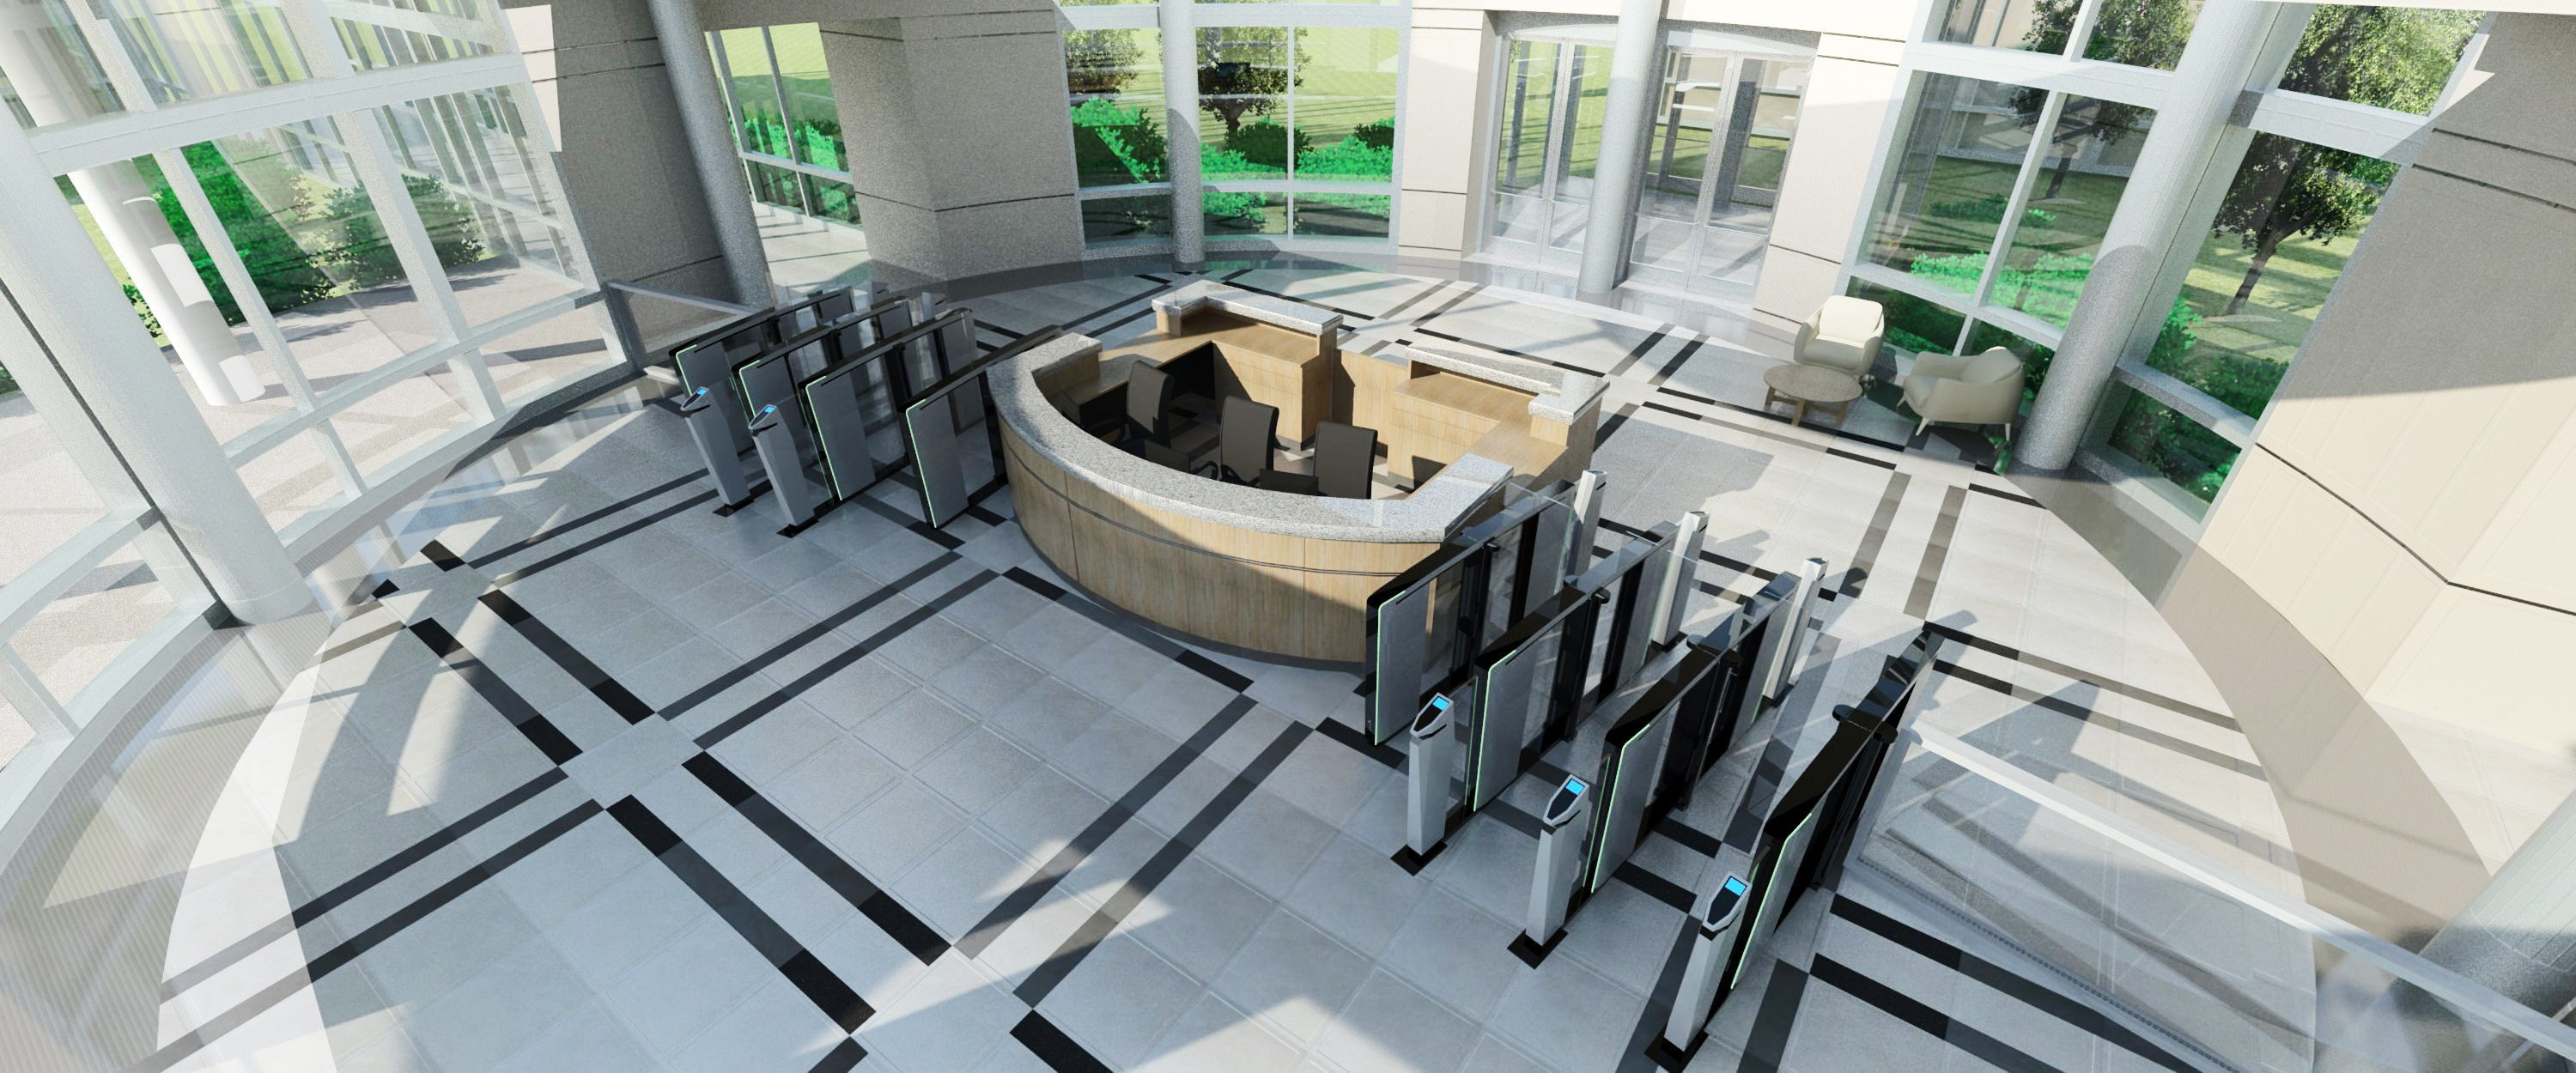 Physical security: optical turnstiles in lobby